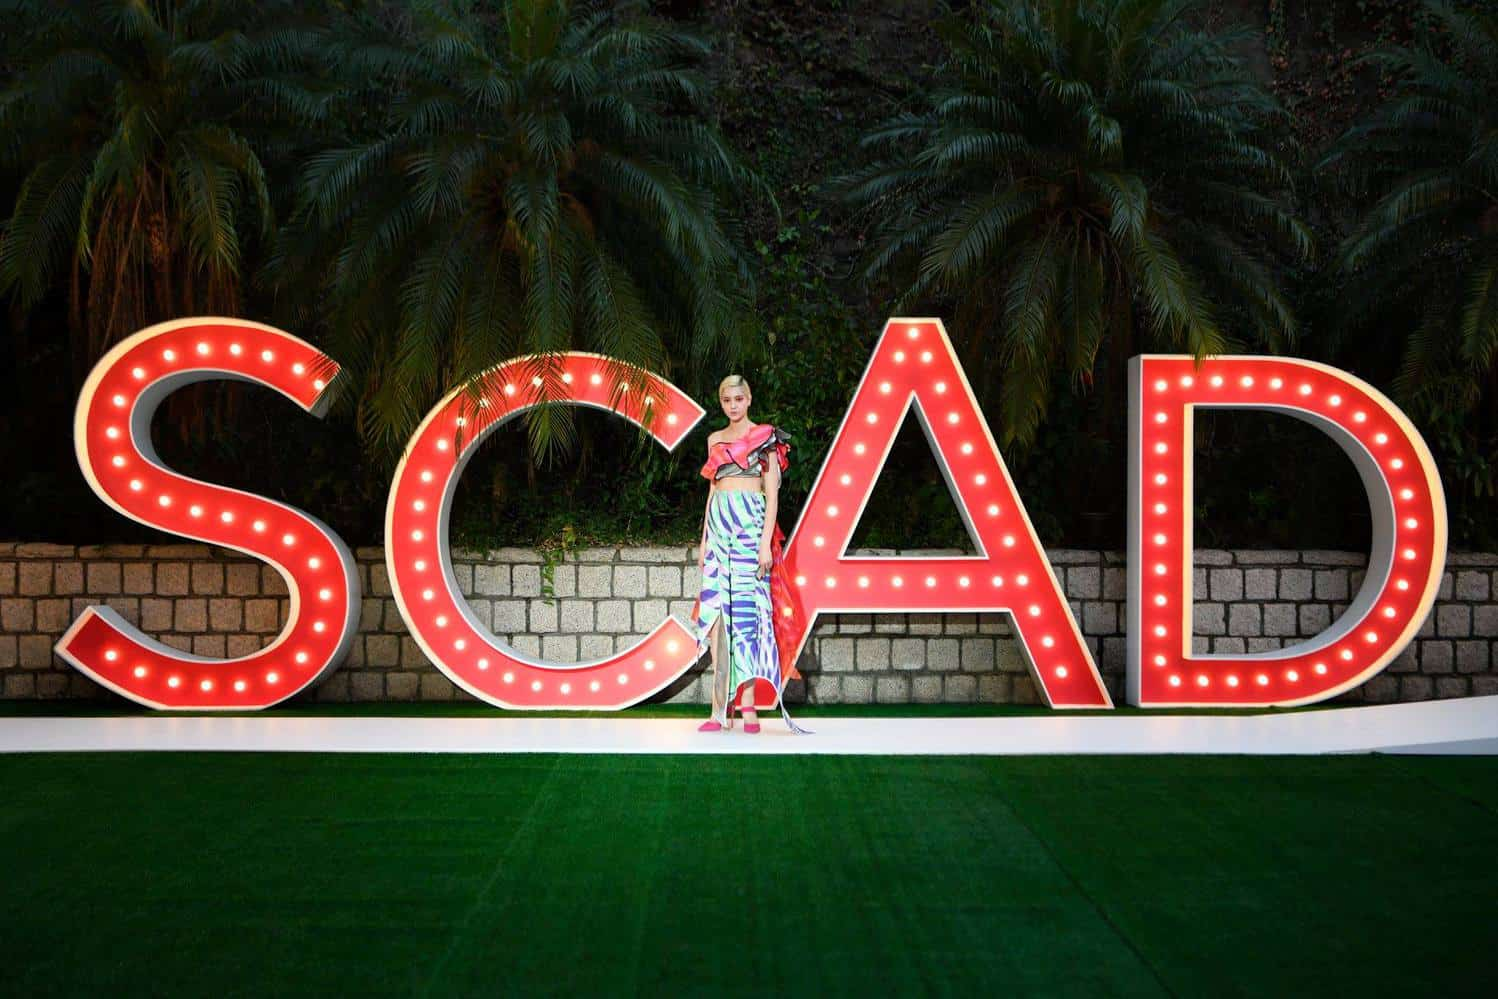 SCAD - The University for Creative Careers Campus